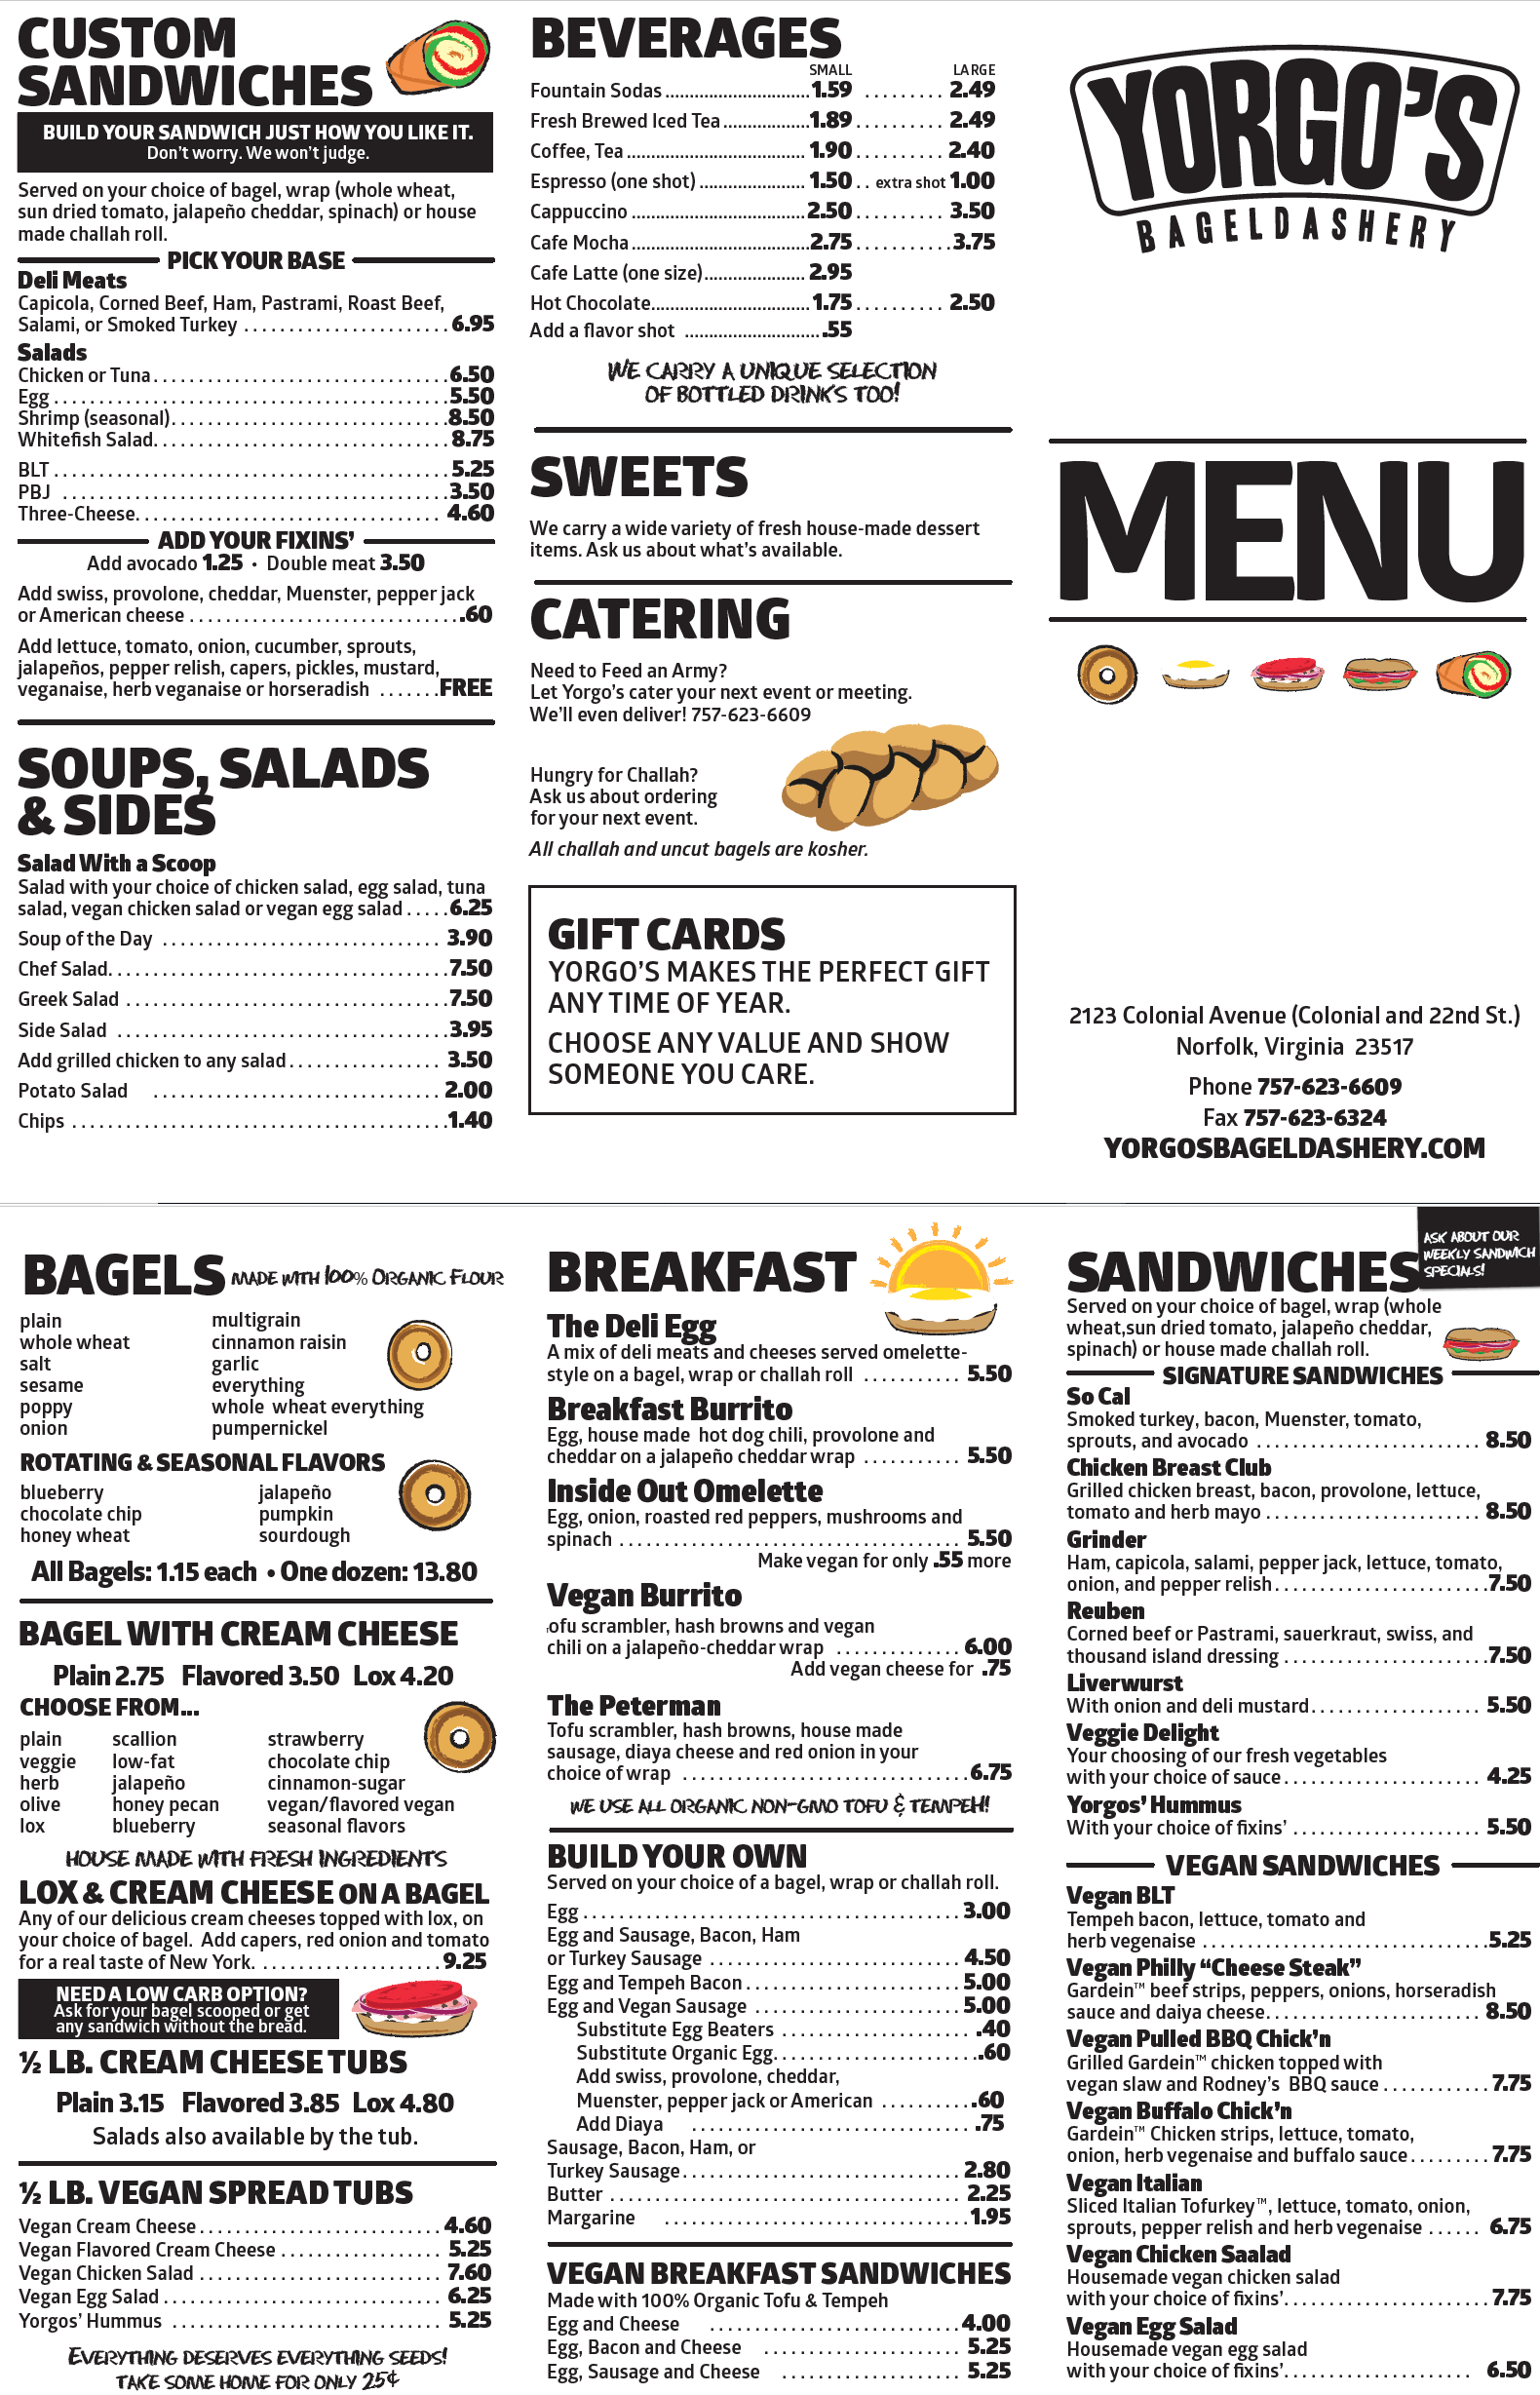 photograph regarding Printable Menu referred to as MENU Yorgos Bageldashery